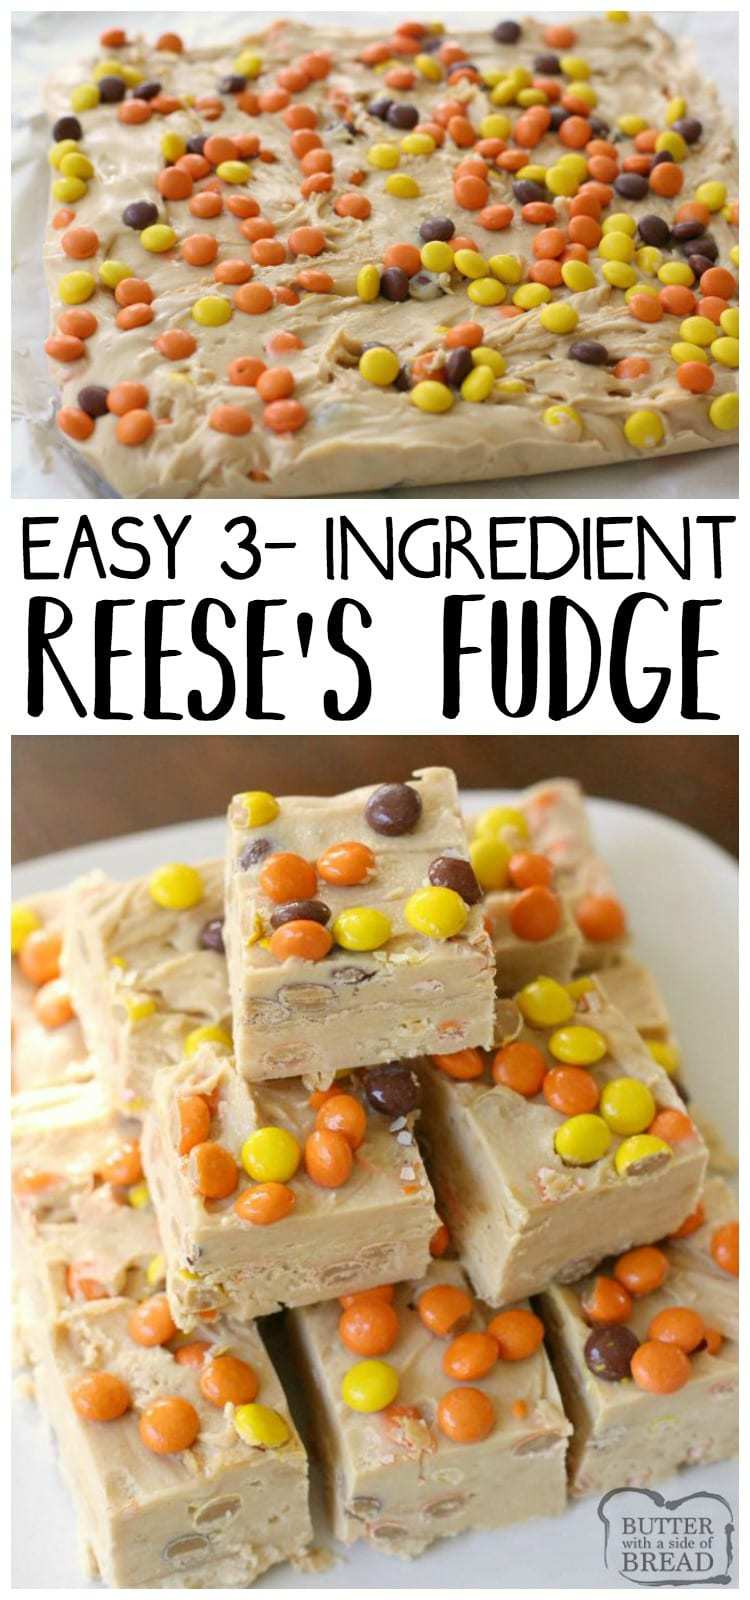 Reese's Fudge with a smooth, creamy texture & peanut butter flavor that's only has 3 ingredients! Topped with mini Reese's Pieces for flavor & fun. Easy #fudge recipe from Butter With A Side of Bread